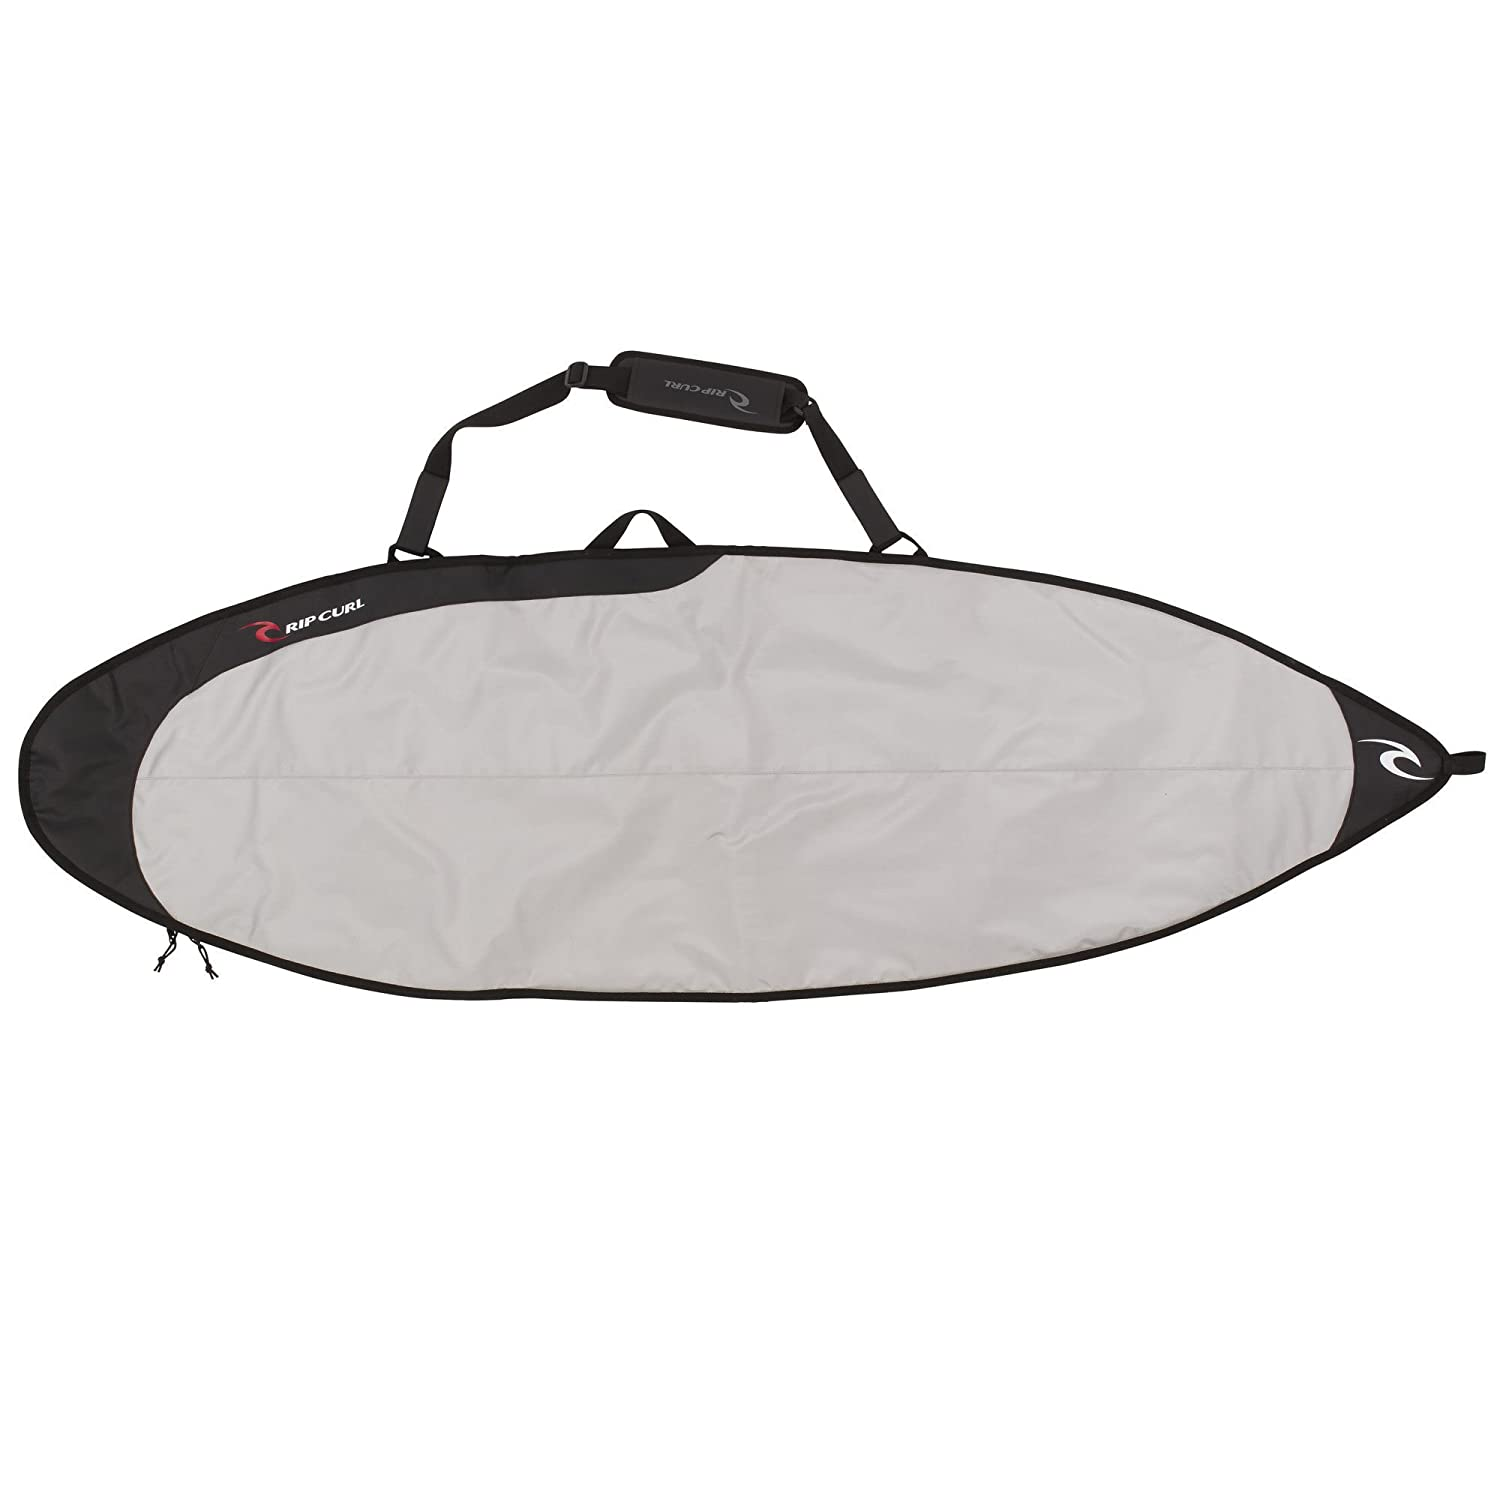 Rip Curl Day Cover 6.3 ft Silver/Black BBBAC4: Amazon.es: Deportes y aire libre